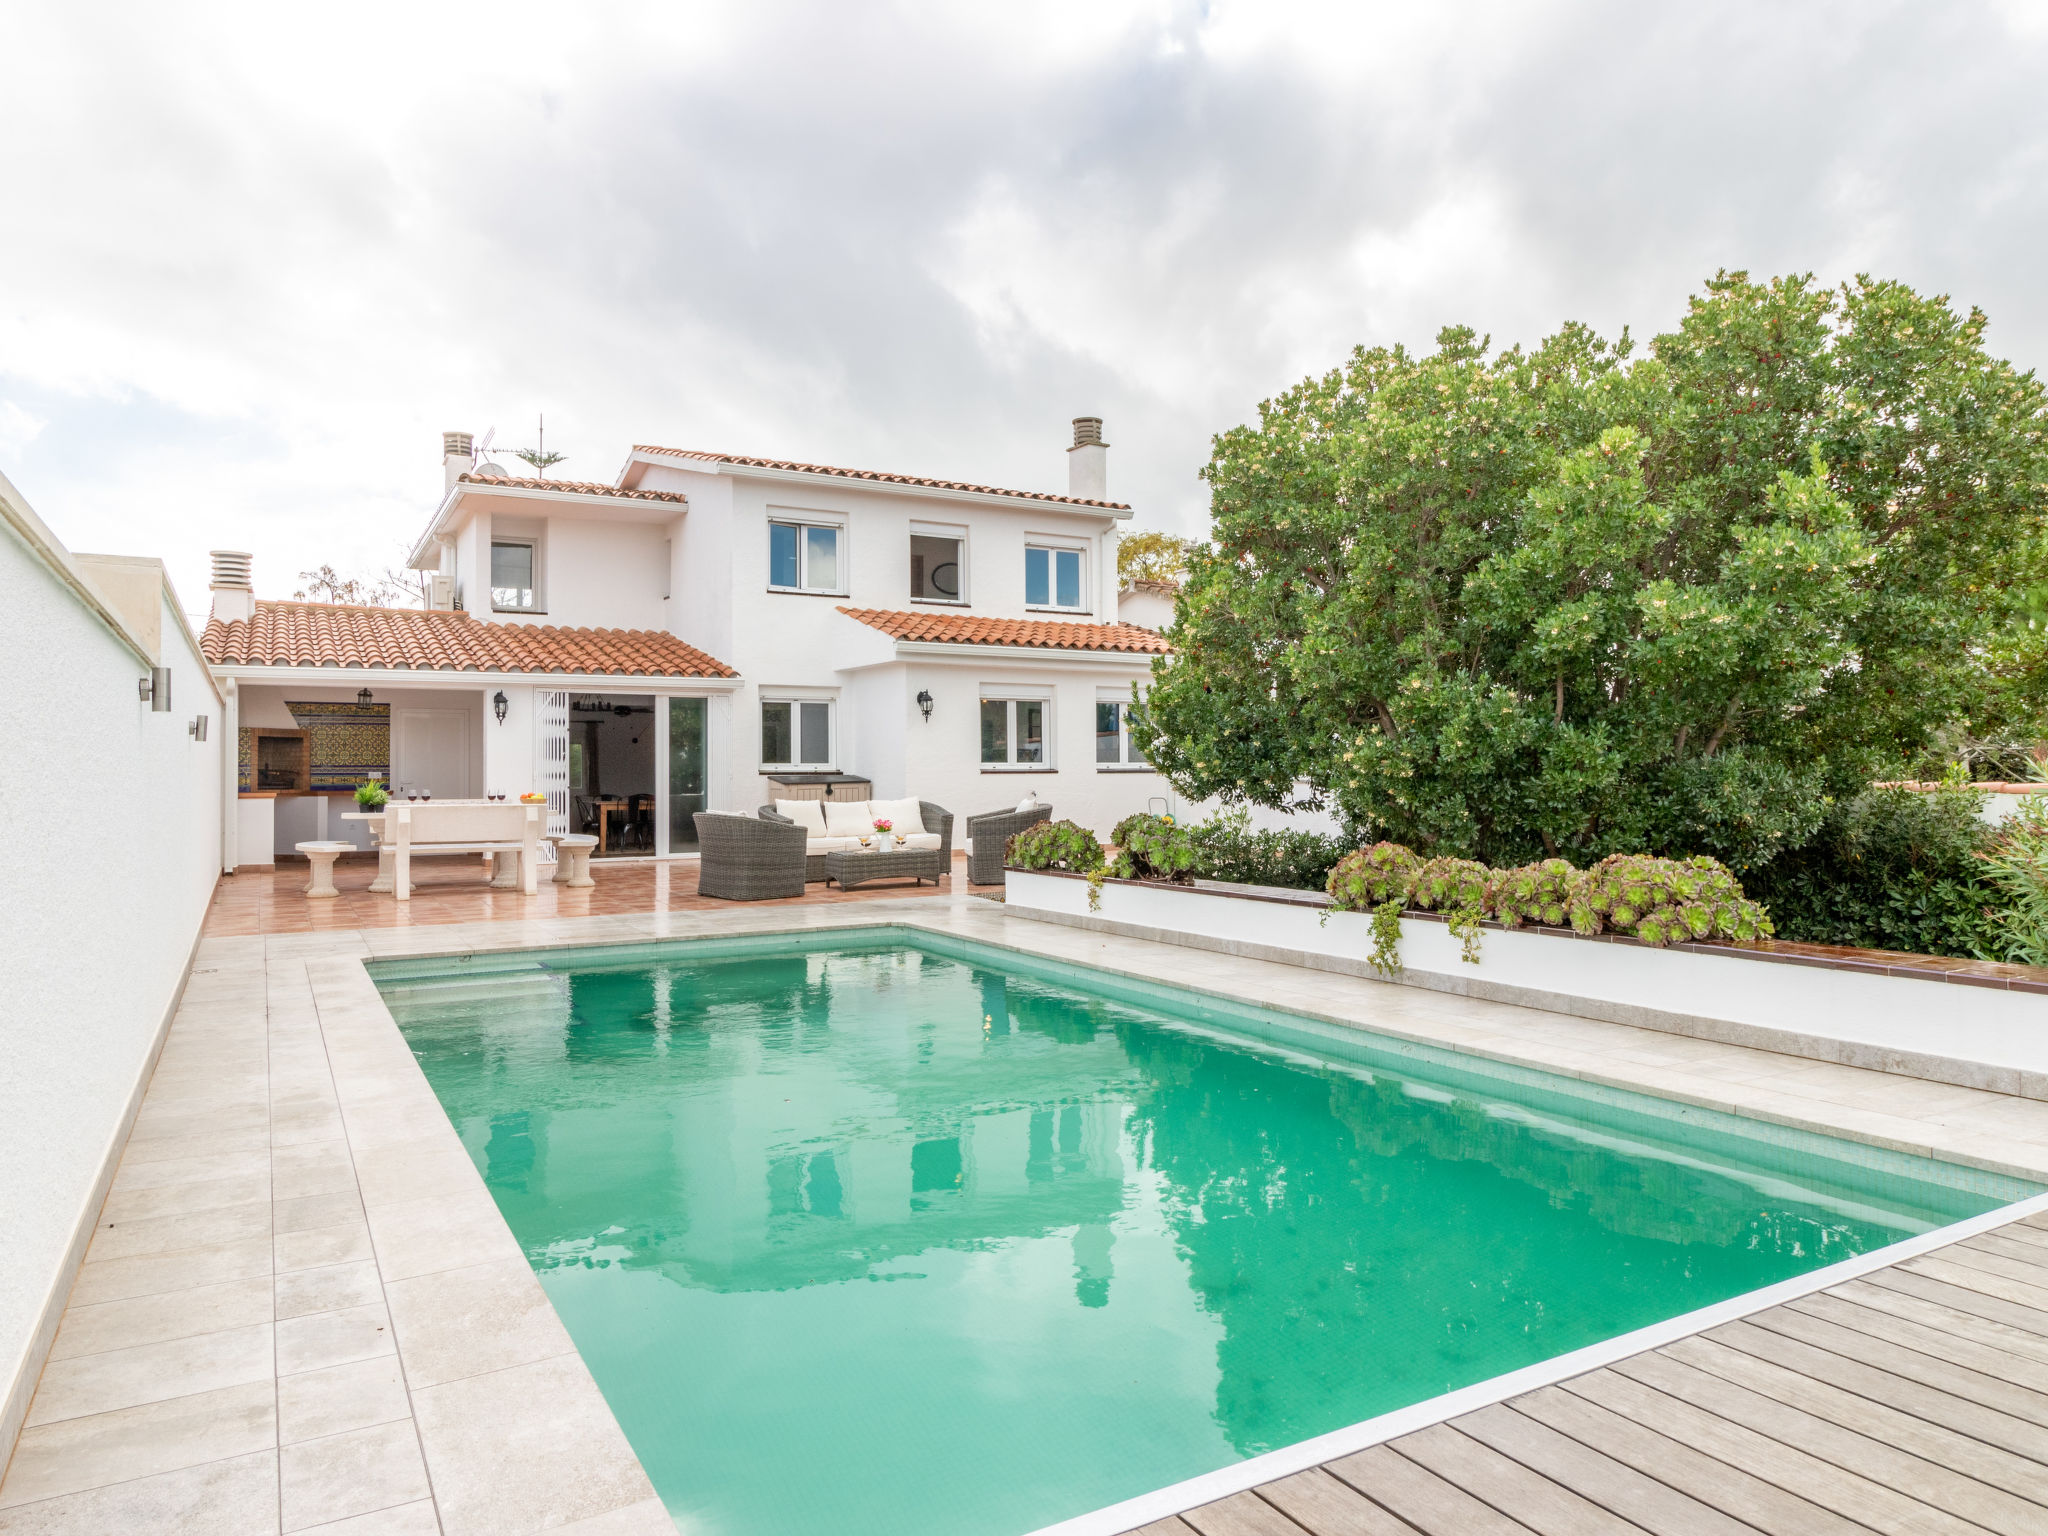 Villa Barrientos,Empuriabrava,Costa Brava #1